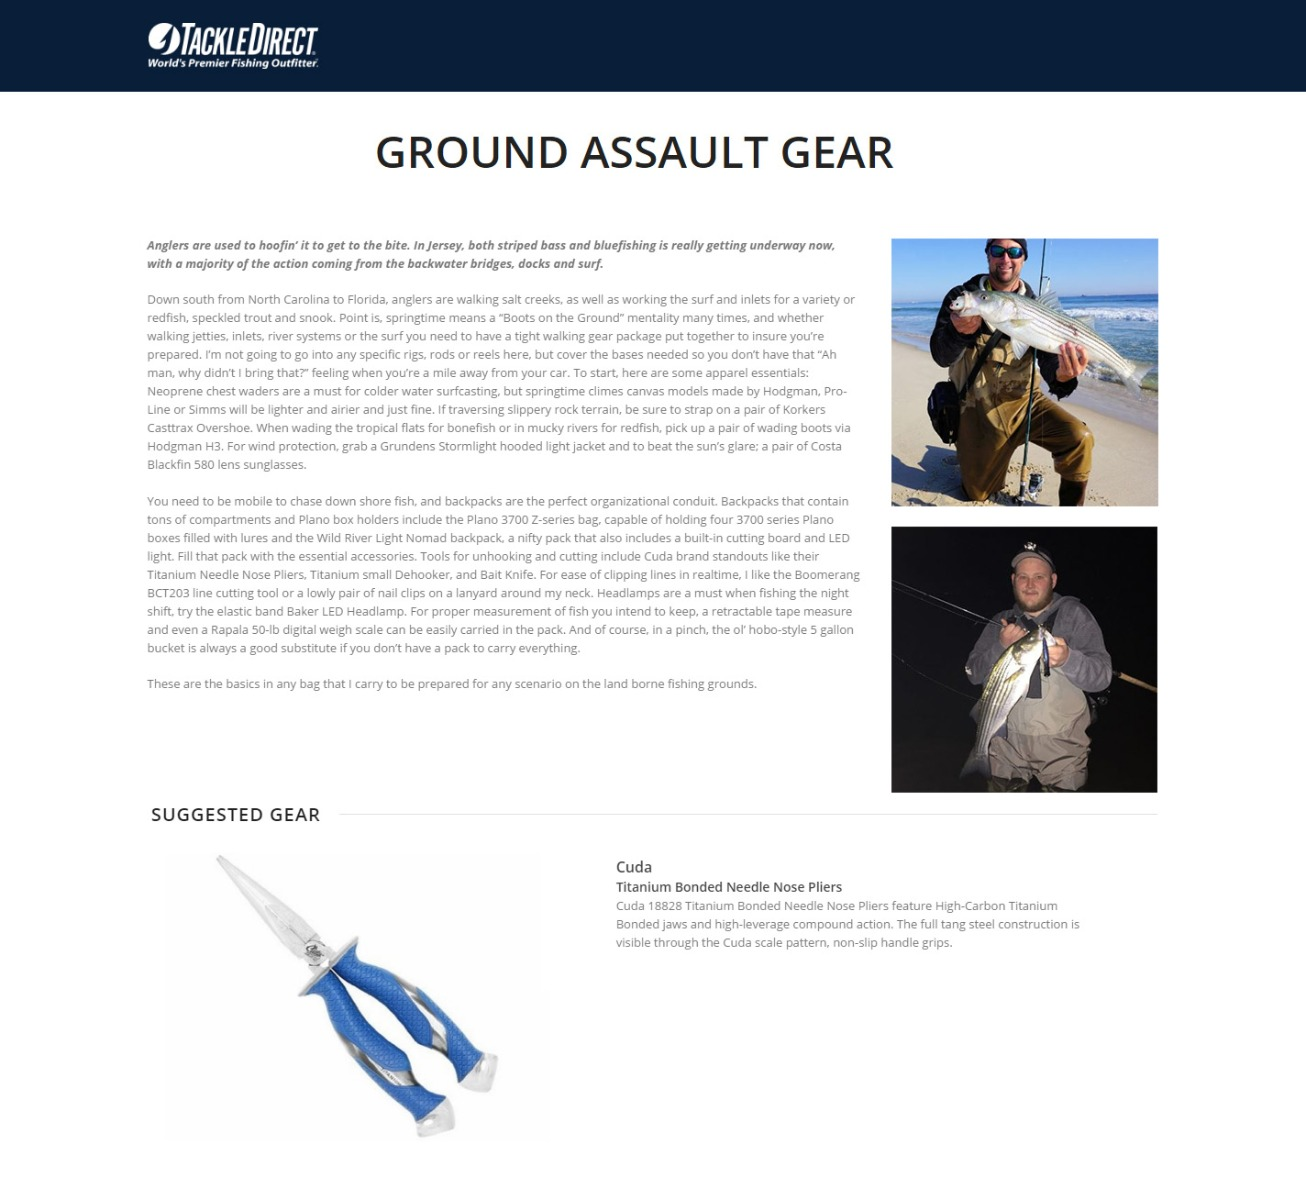 Ground Assault Gear - Featured in TackleDirect Blog